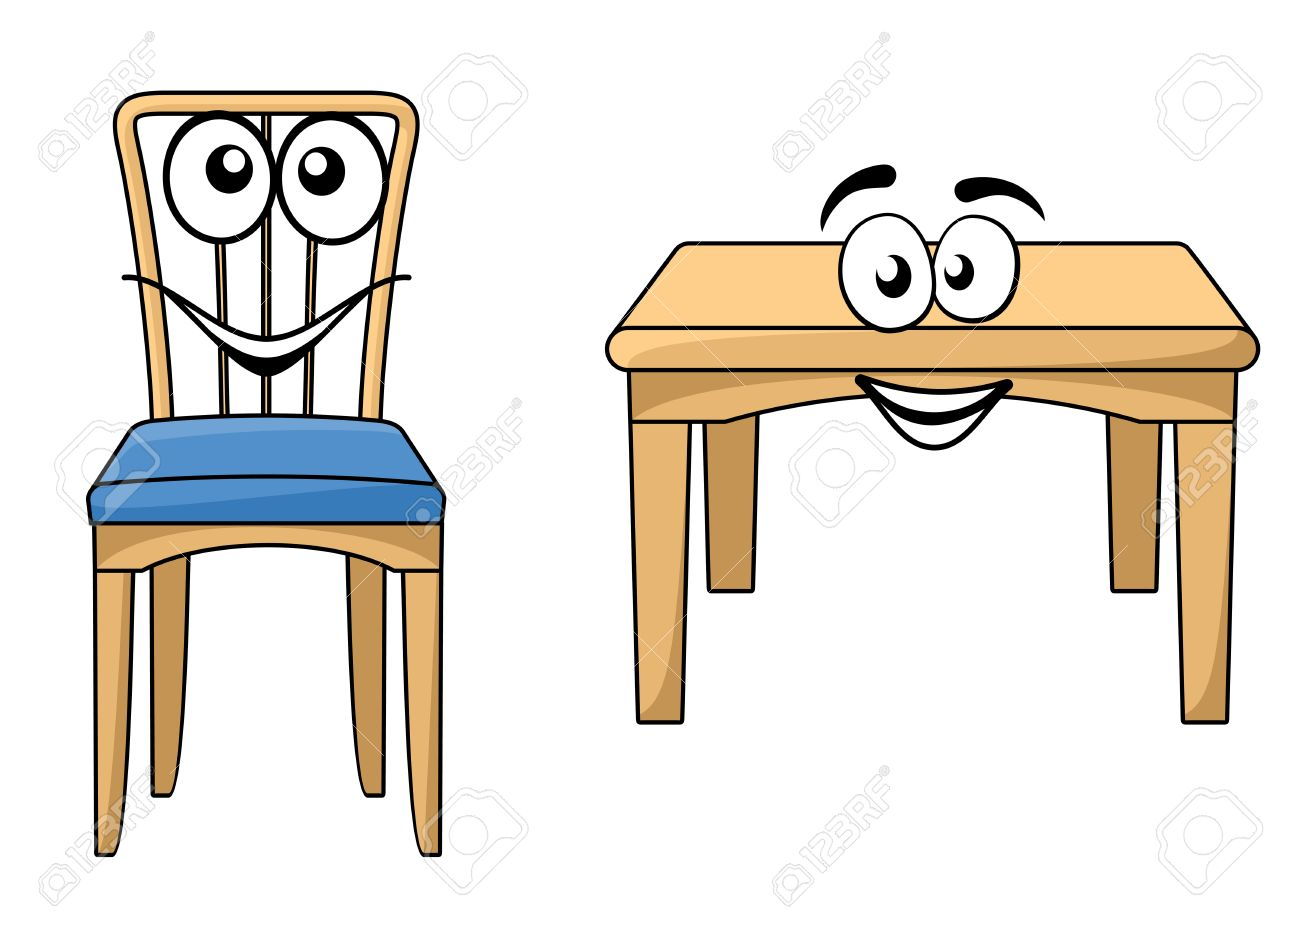 Cute Cartoon Wooden Furniture With A Happy Smiling Table And